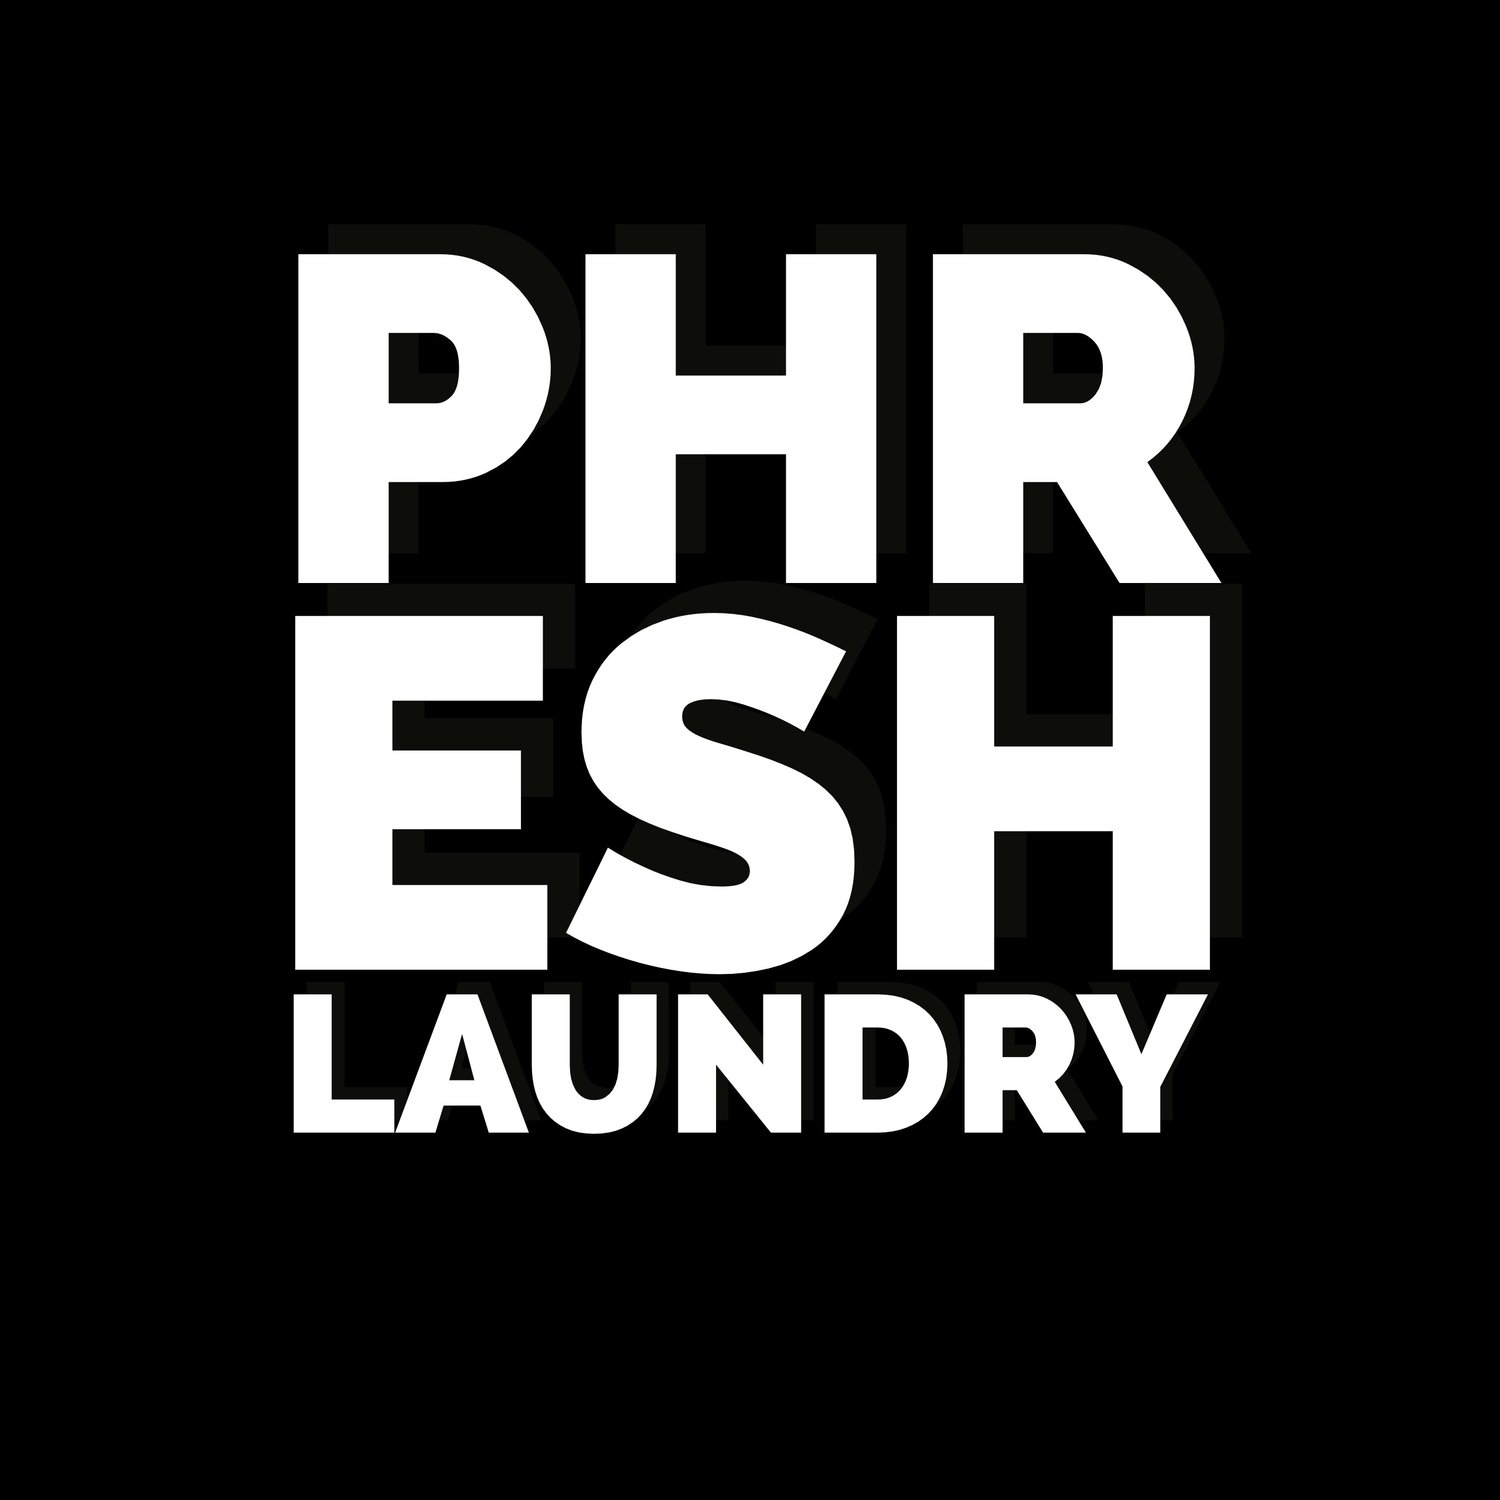 Phresh Laundry by Theoplis